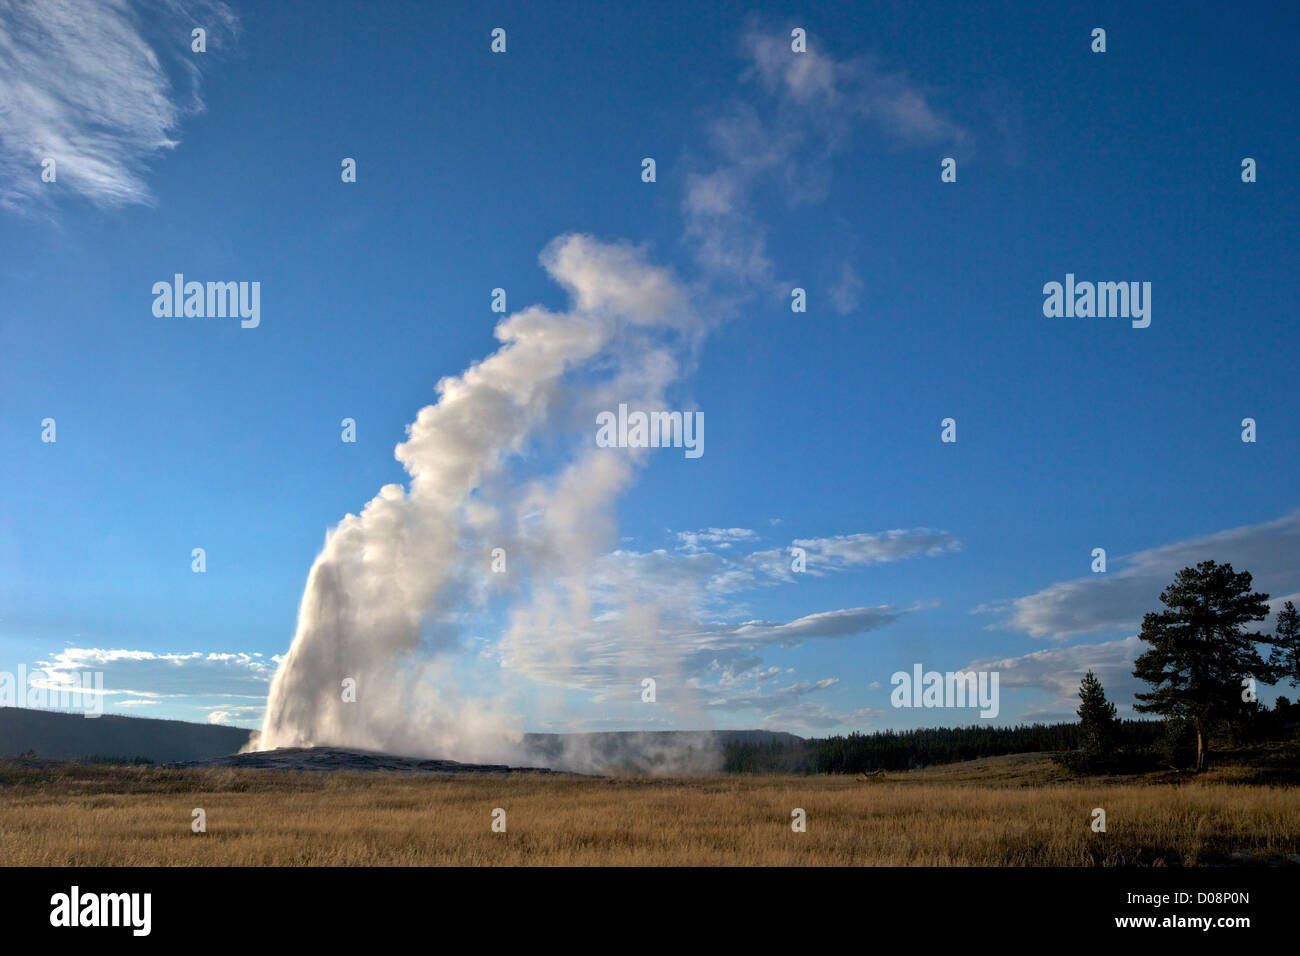 Old Faithful Geyser erupting in summer evening light, Yellowstone National Park, Wyoming, USA Stock Photo